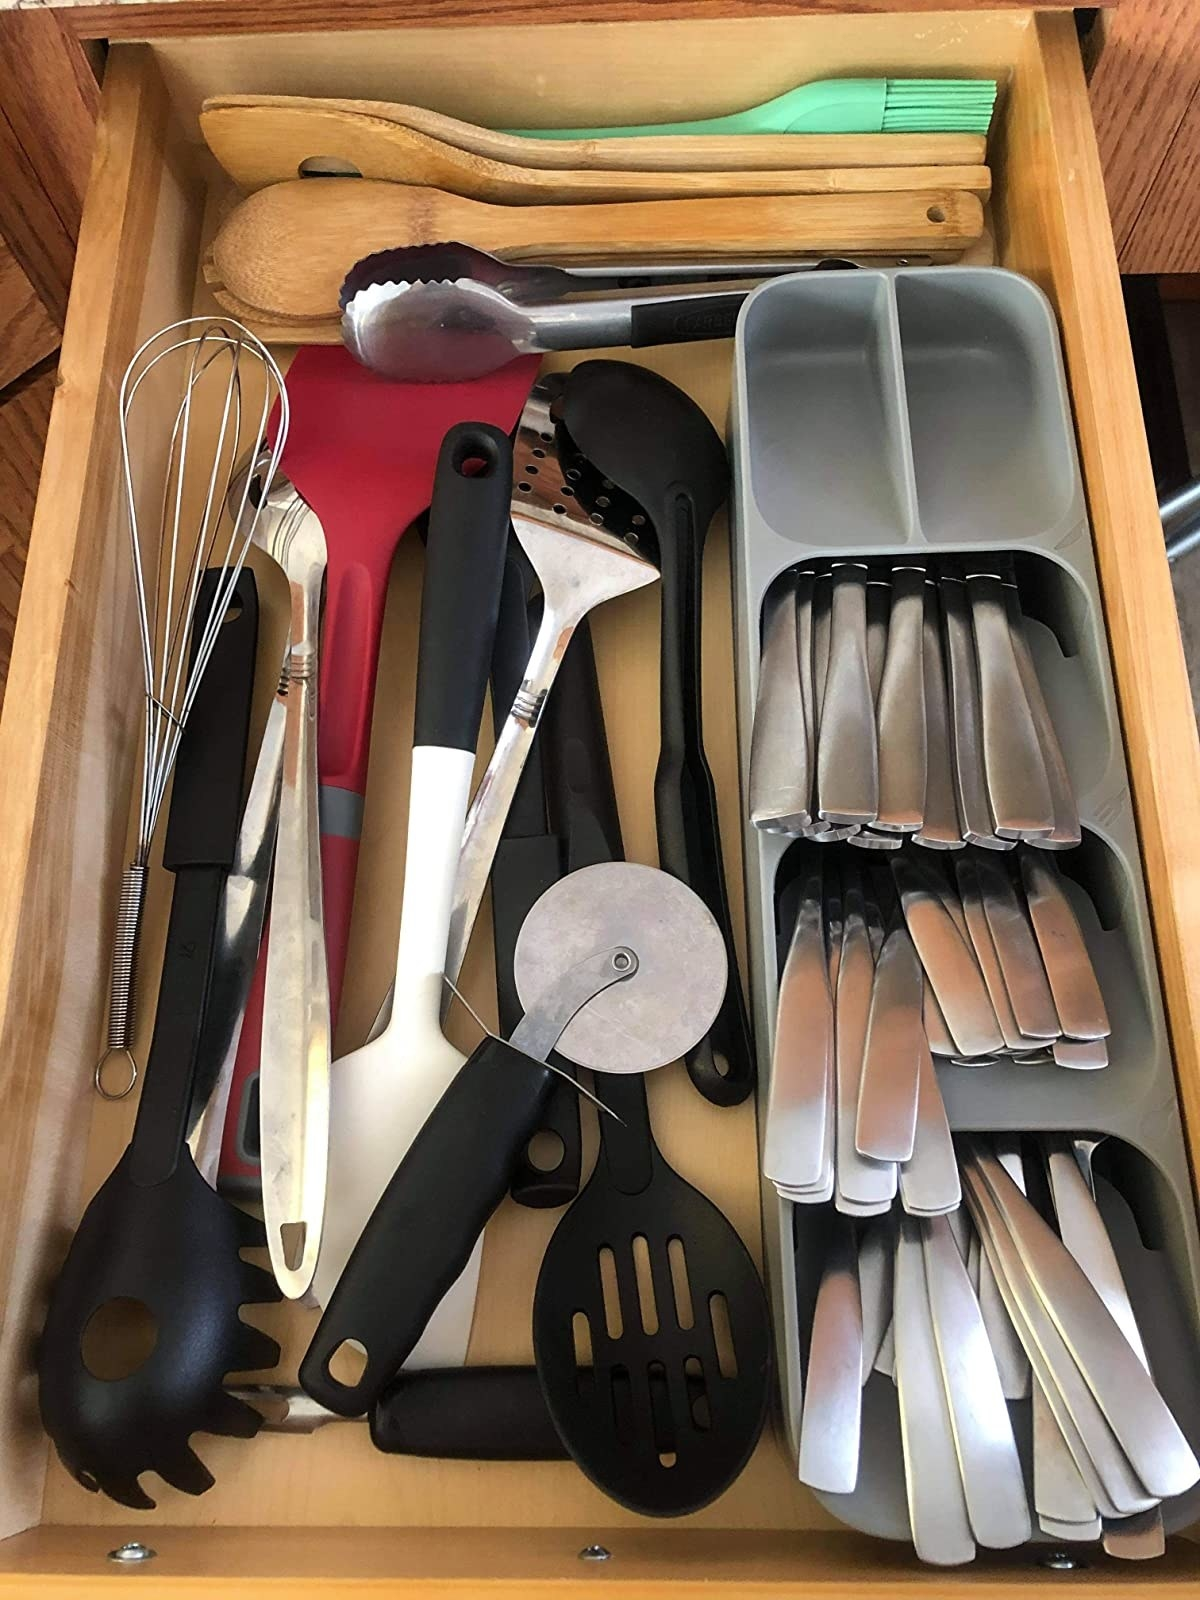 reviewer photo showing the silverware organizer along with several other kitchen utensils in the drawer